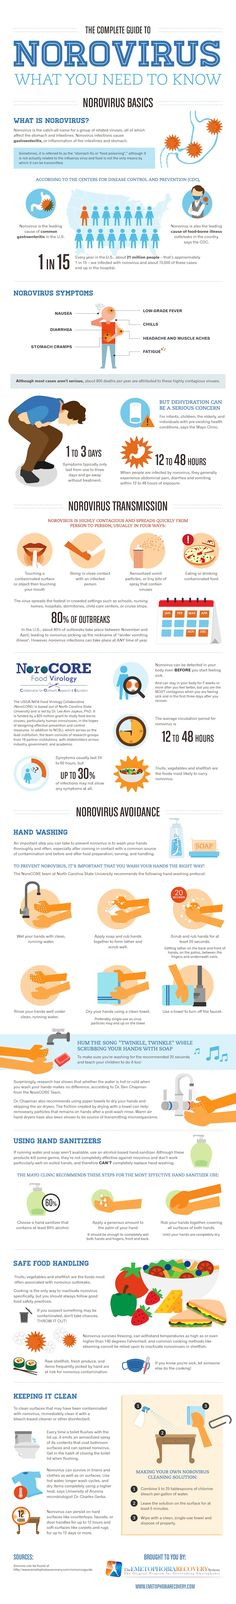 The Complete Guide to Norovirus Prevention and Treatment [INFOGRAPHIC]